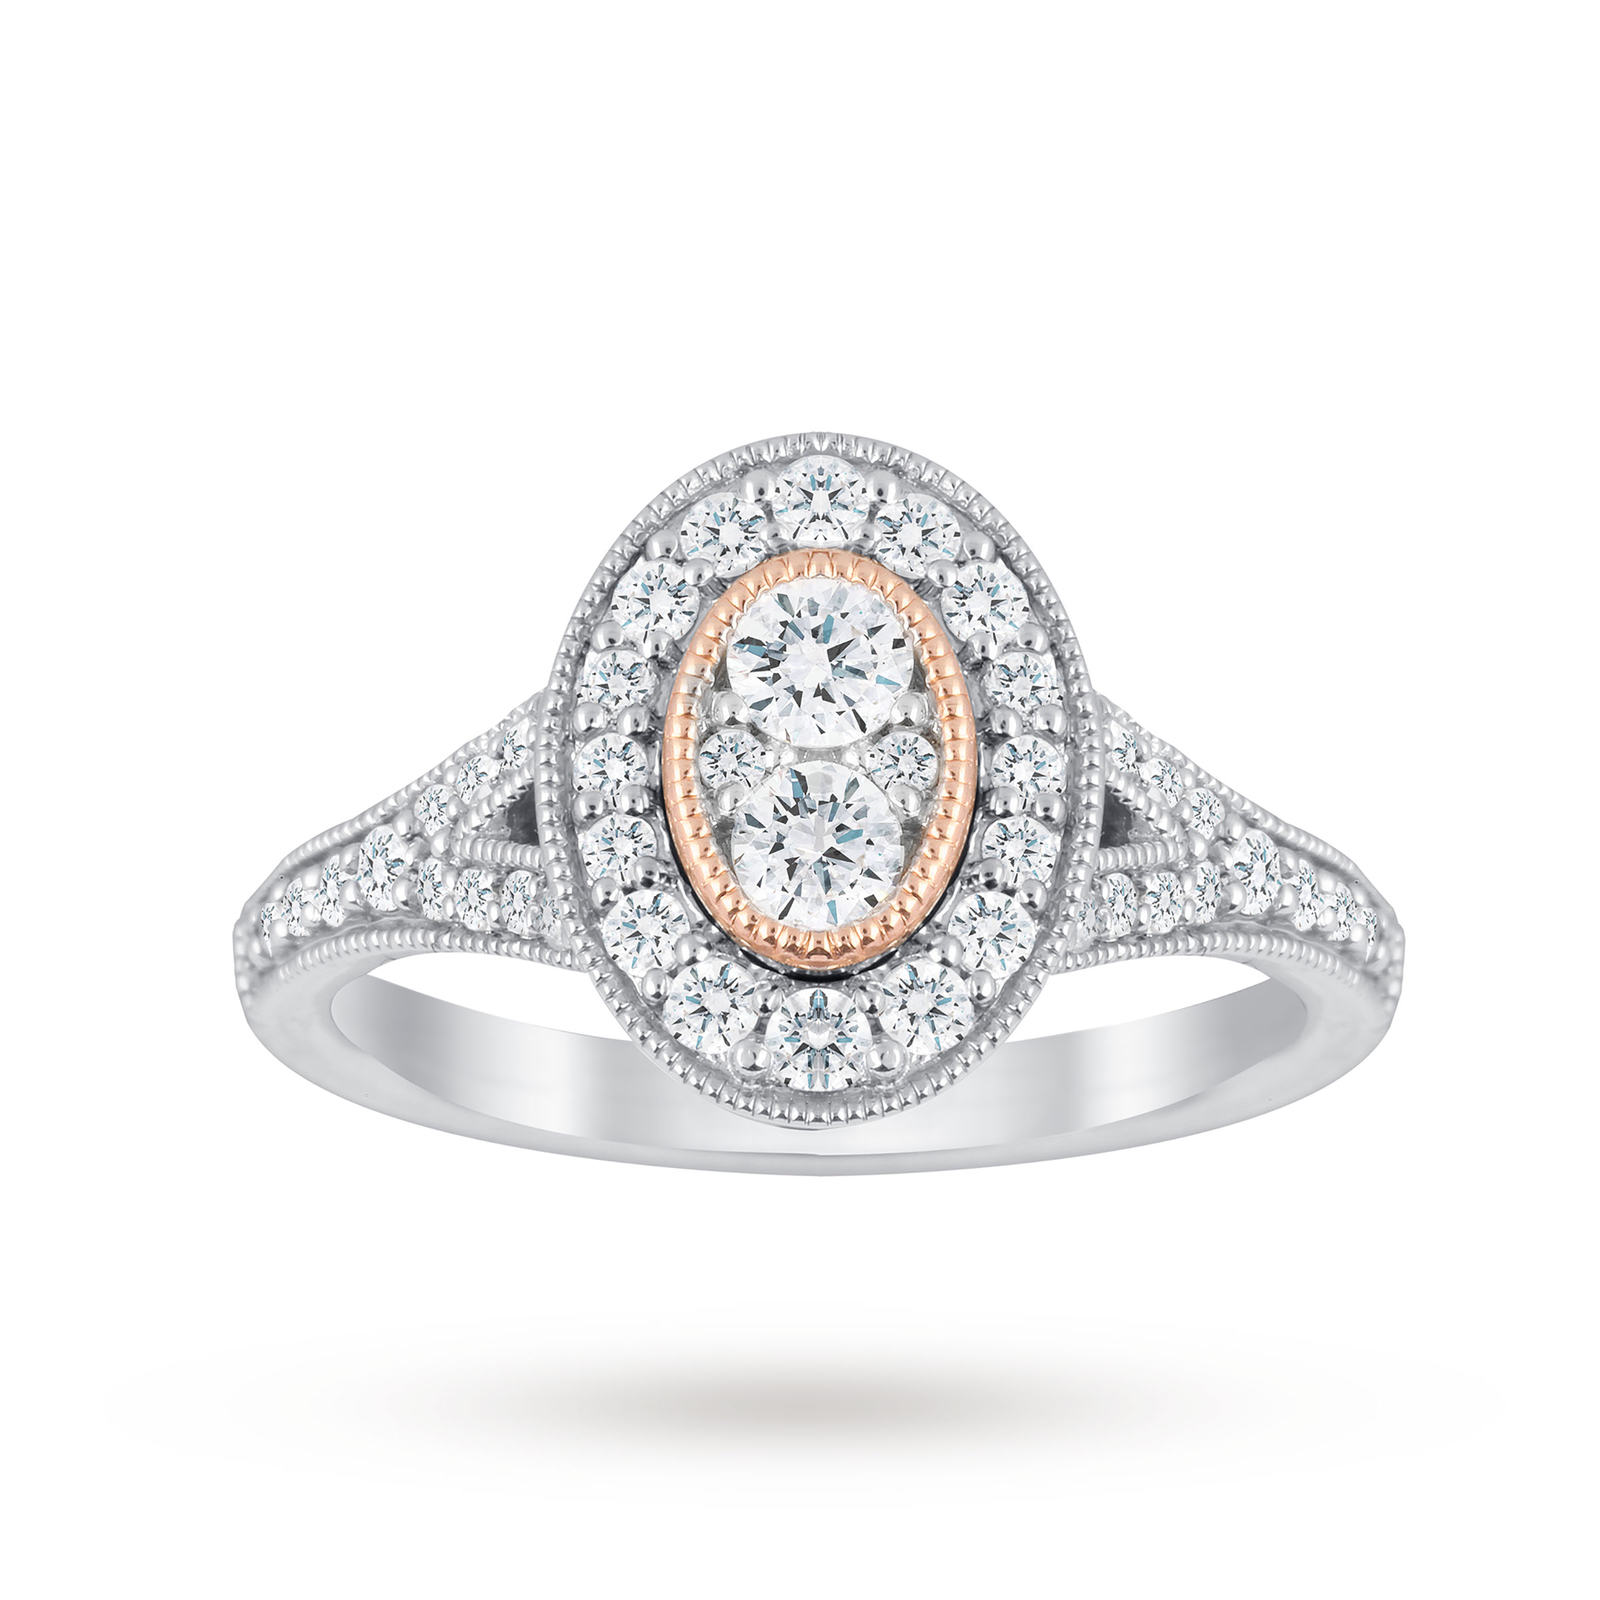 Jenny Packham 18 Carat White Gold 0.60 Carat Diamond Oval Ring With Rose Gold Milgrain